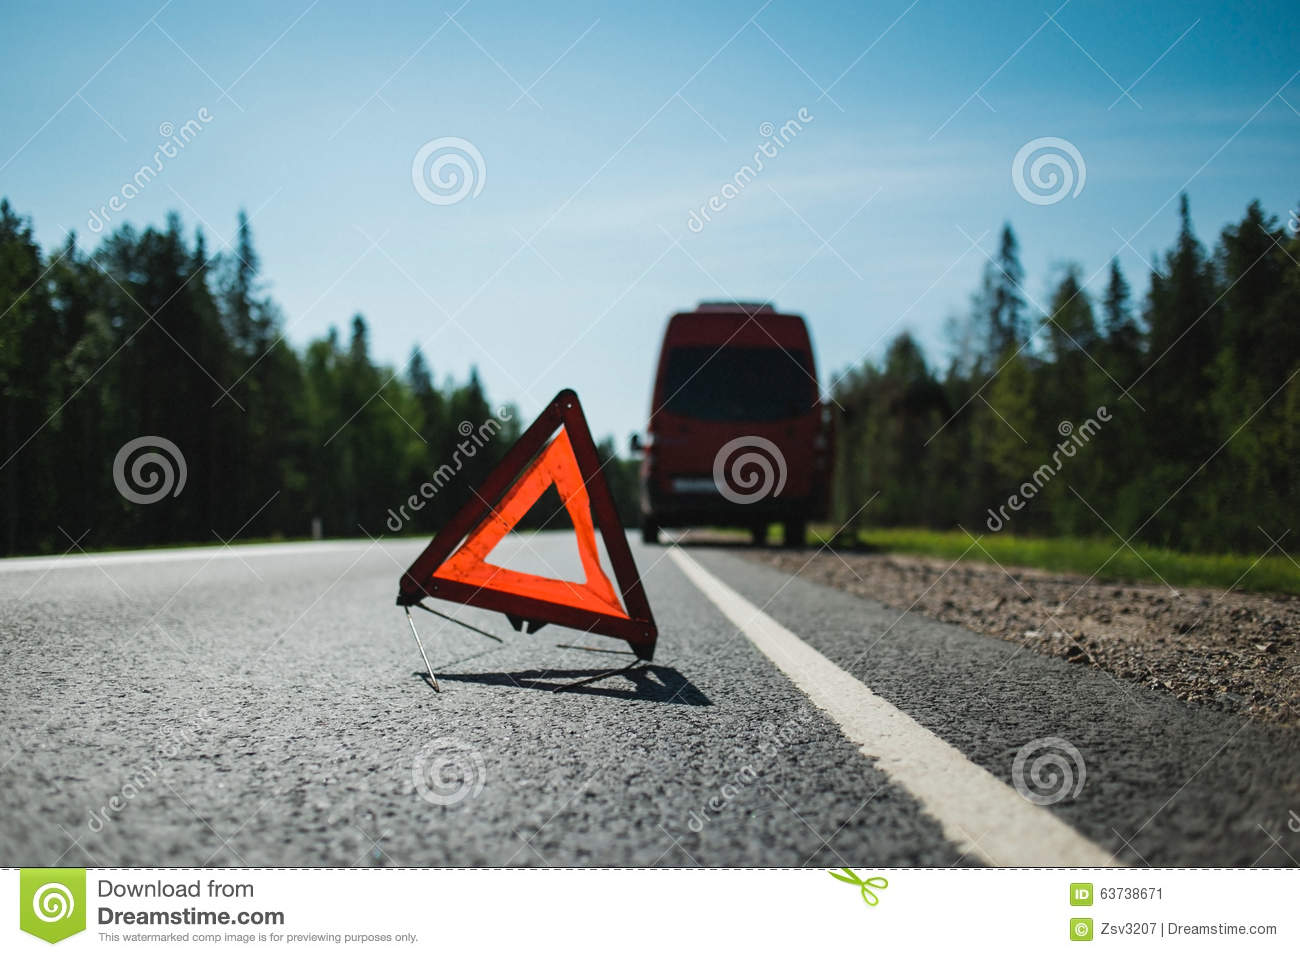 Emergency stop icon clipart emergency off - Emergency Stop Sign On Highway Stock Image